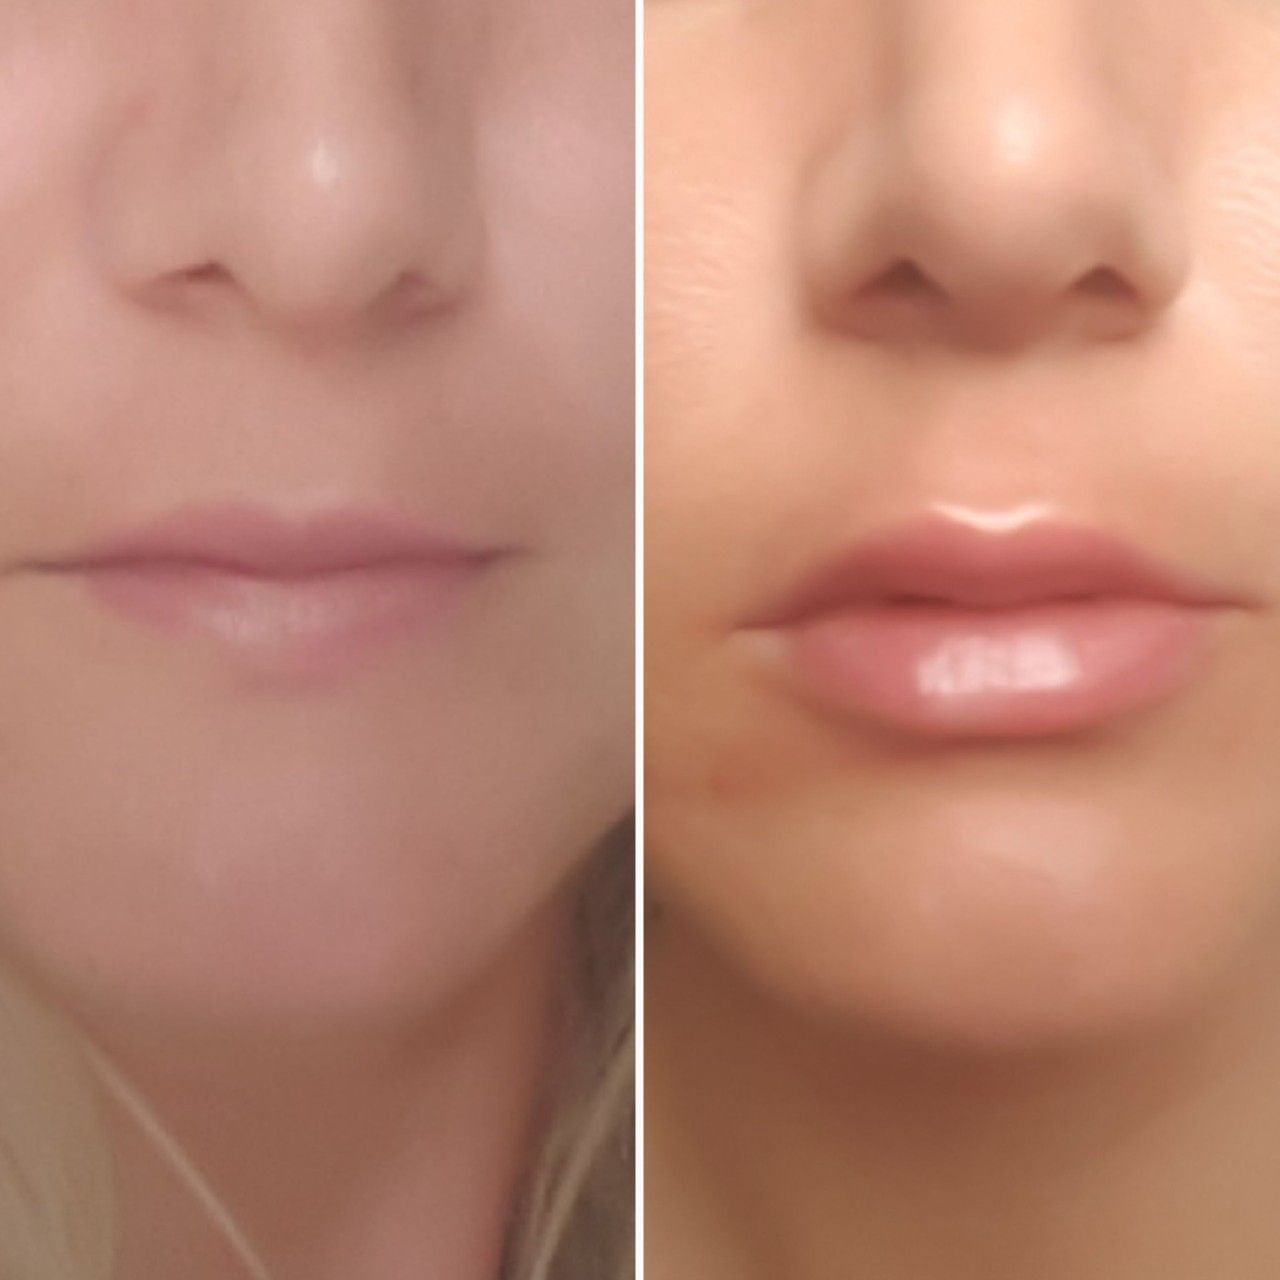 before and after lips injections 0 8 ml #botoxbeforeandafter